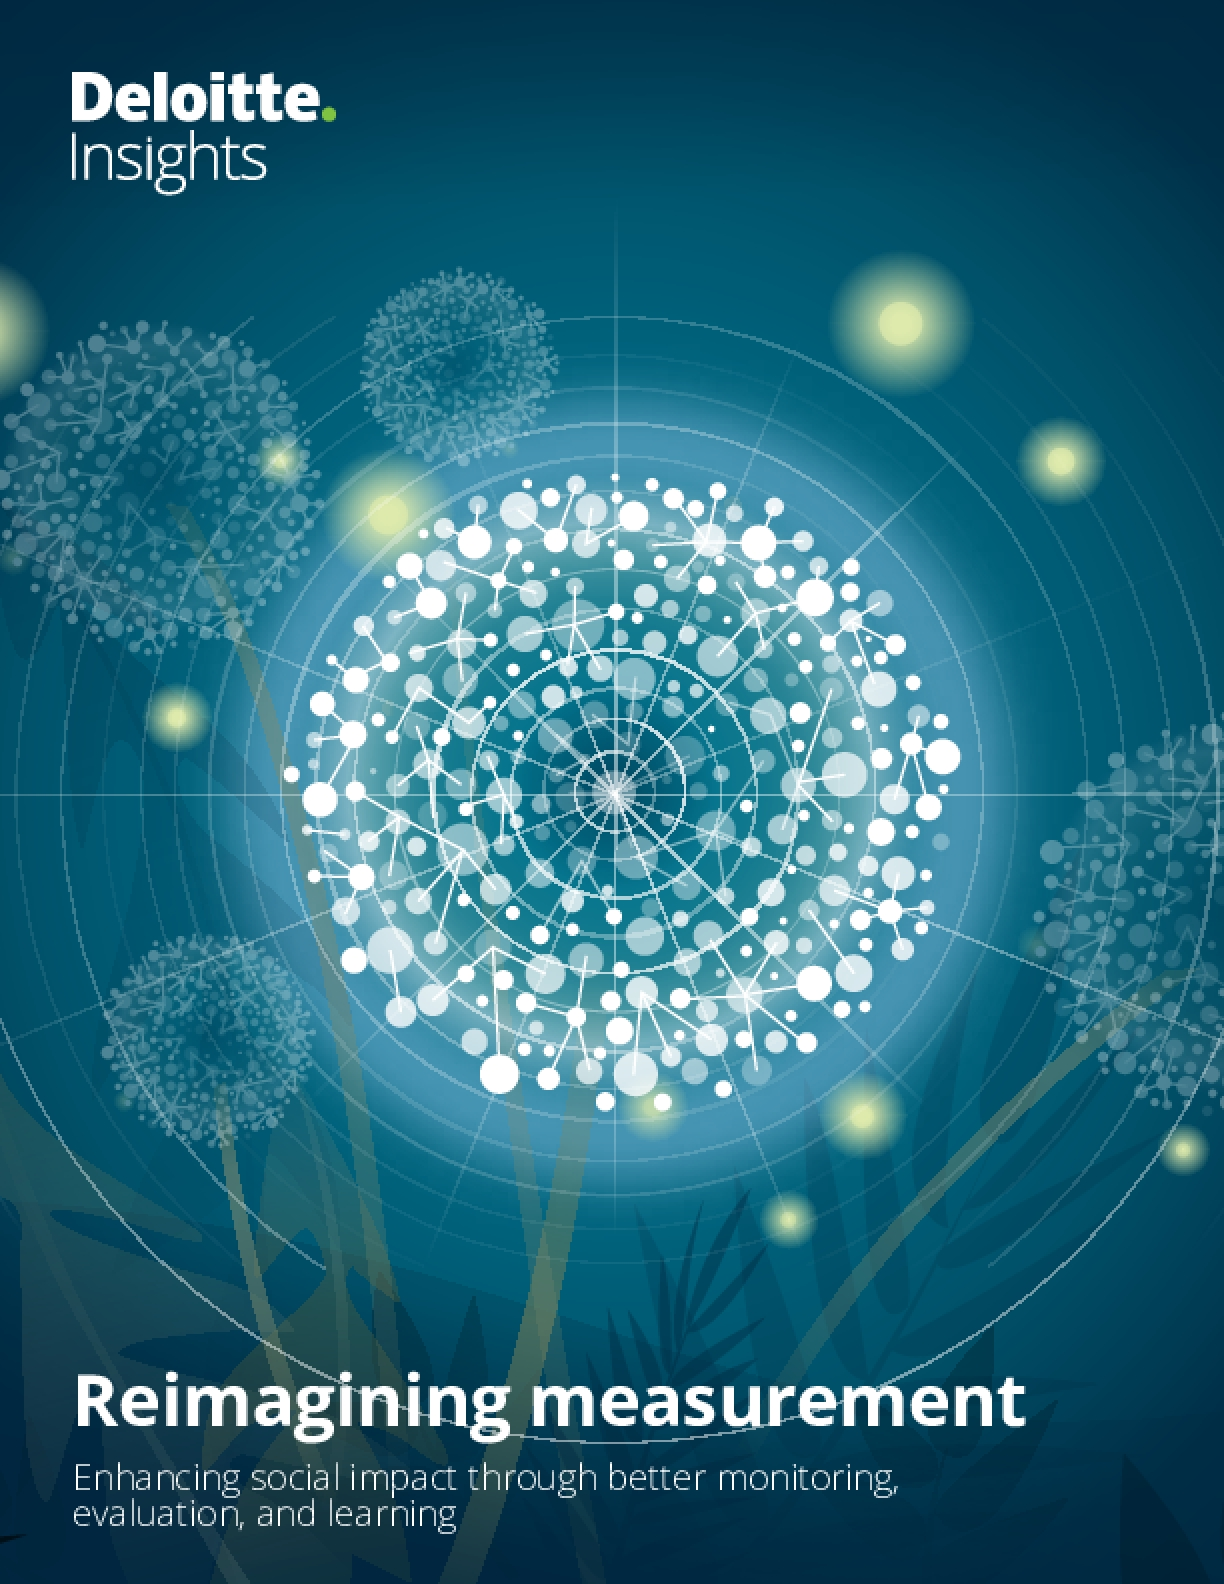 Reimagining measurement: Enhancing social impact through better monitoring, evaluation, and learning